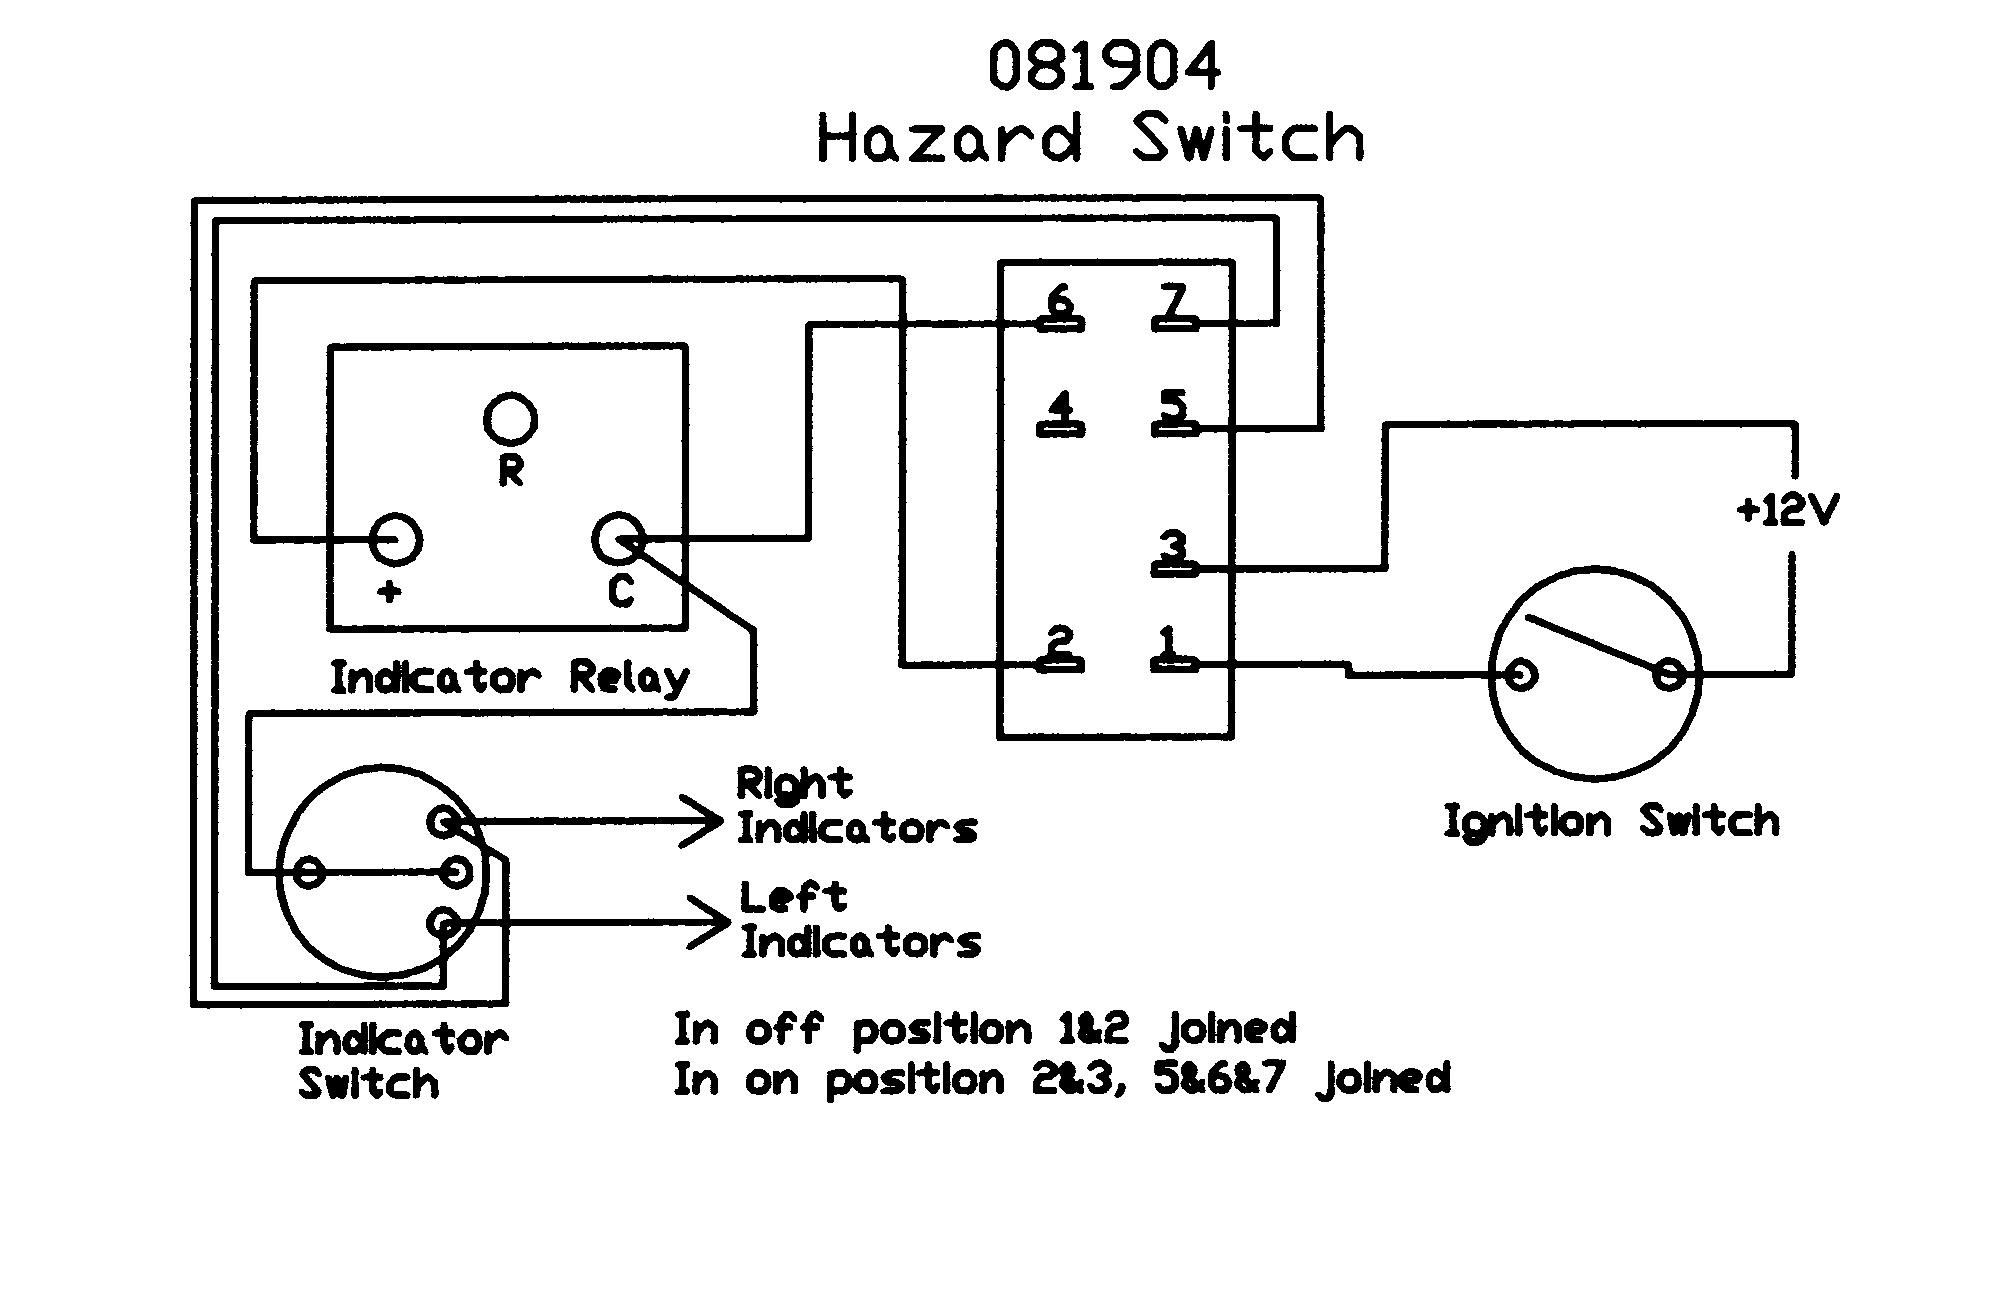 basic wiring diagram for hazard lights  basic  free engine